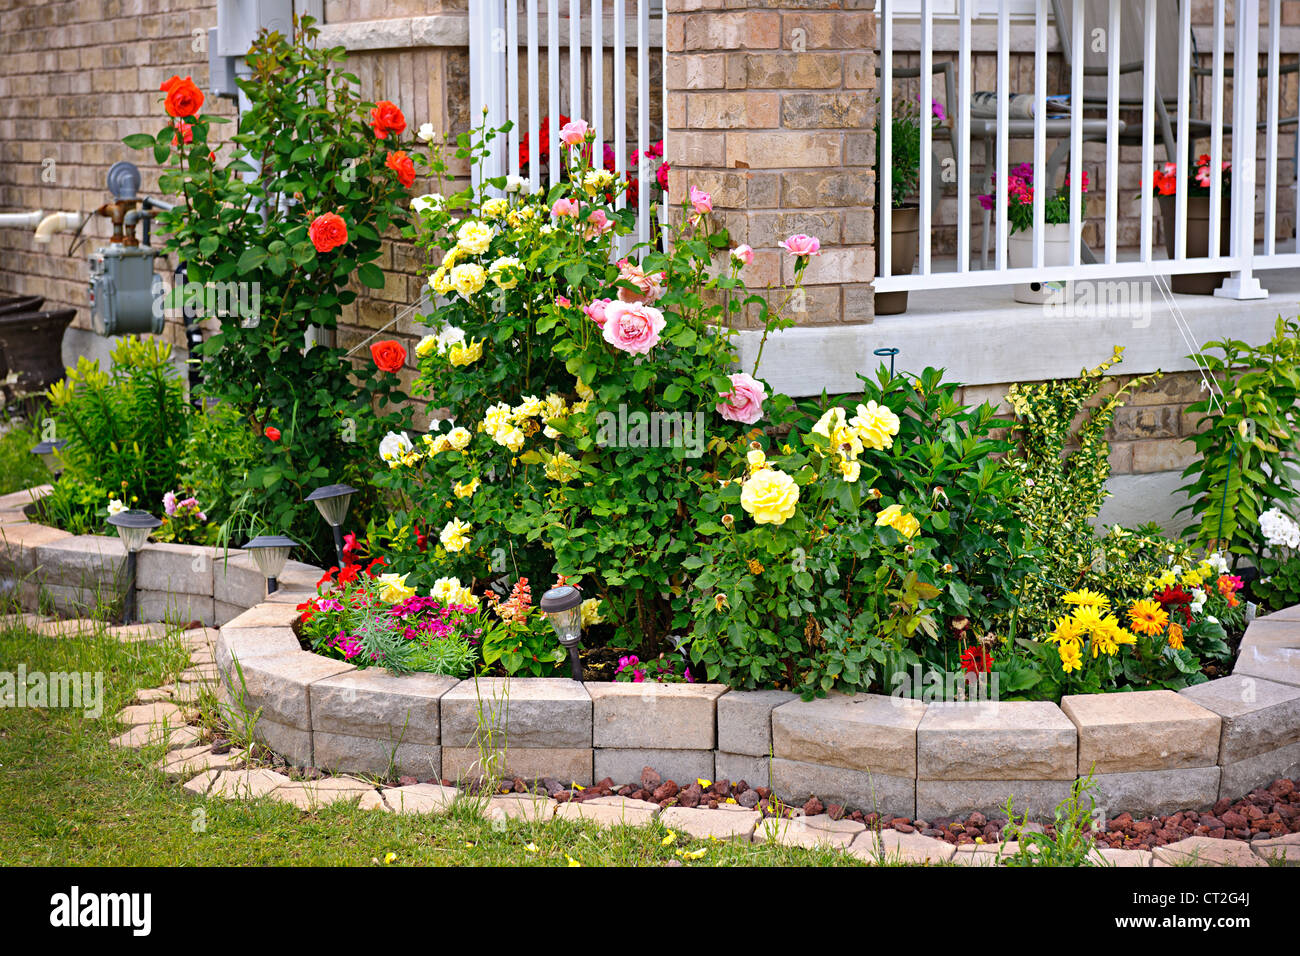 Natural stone landscaping in home rose garden - Stock Image